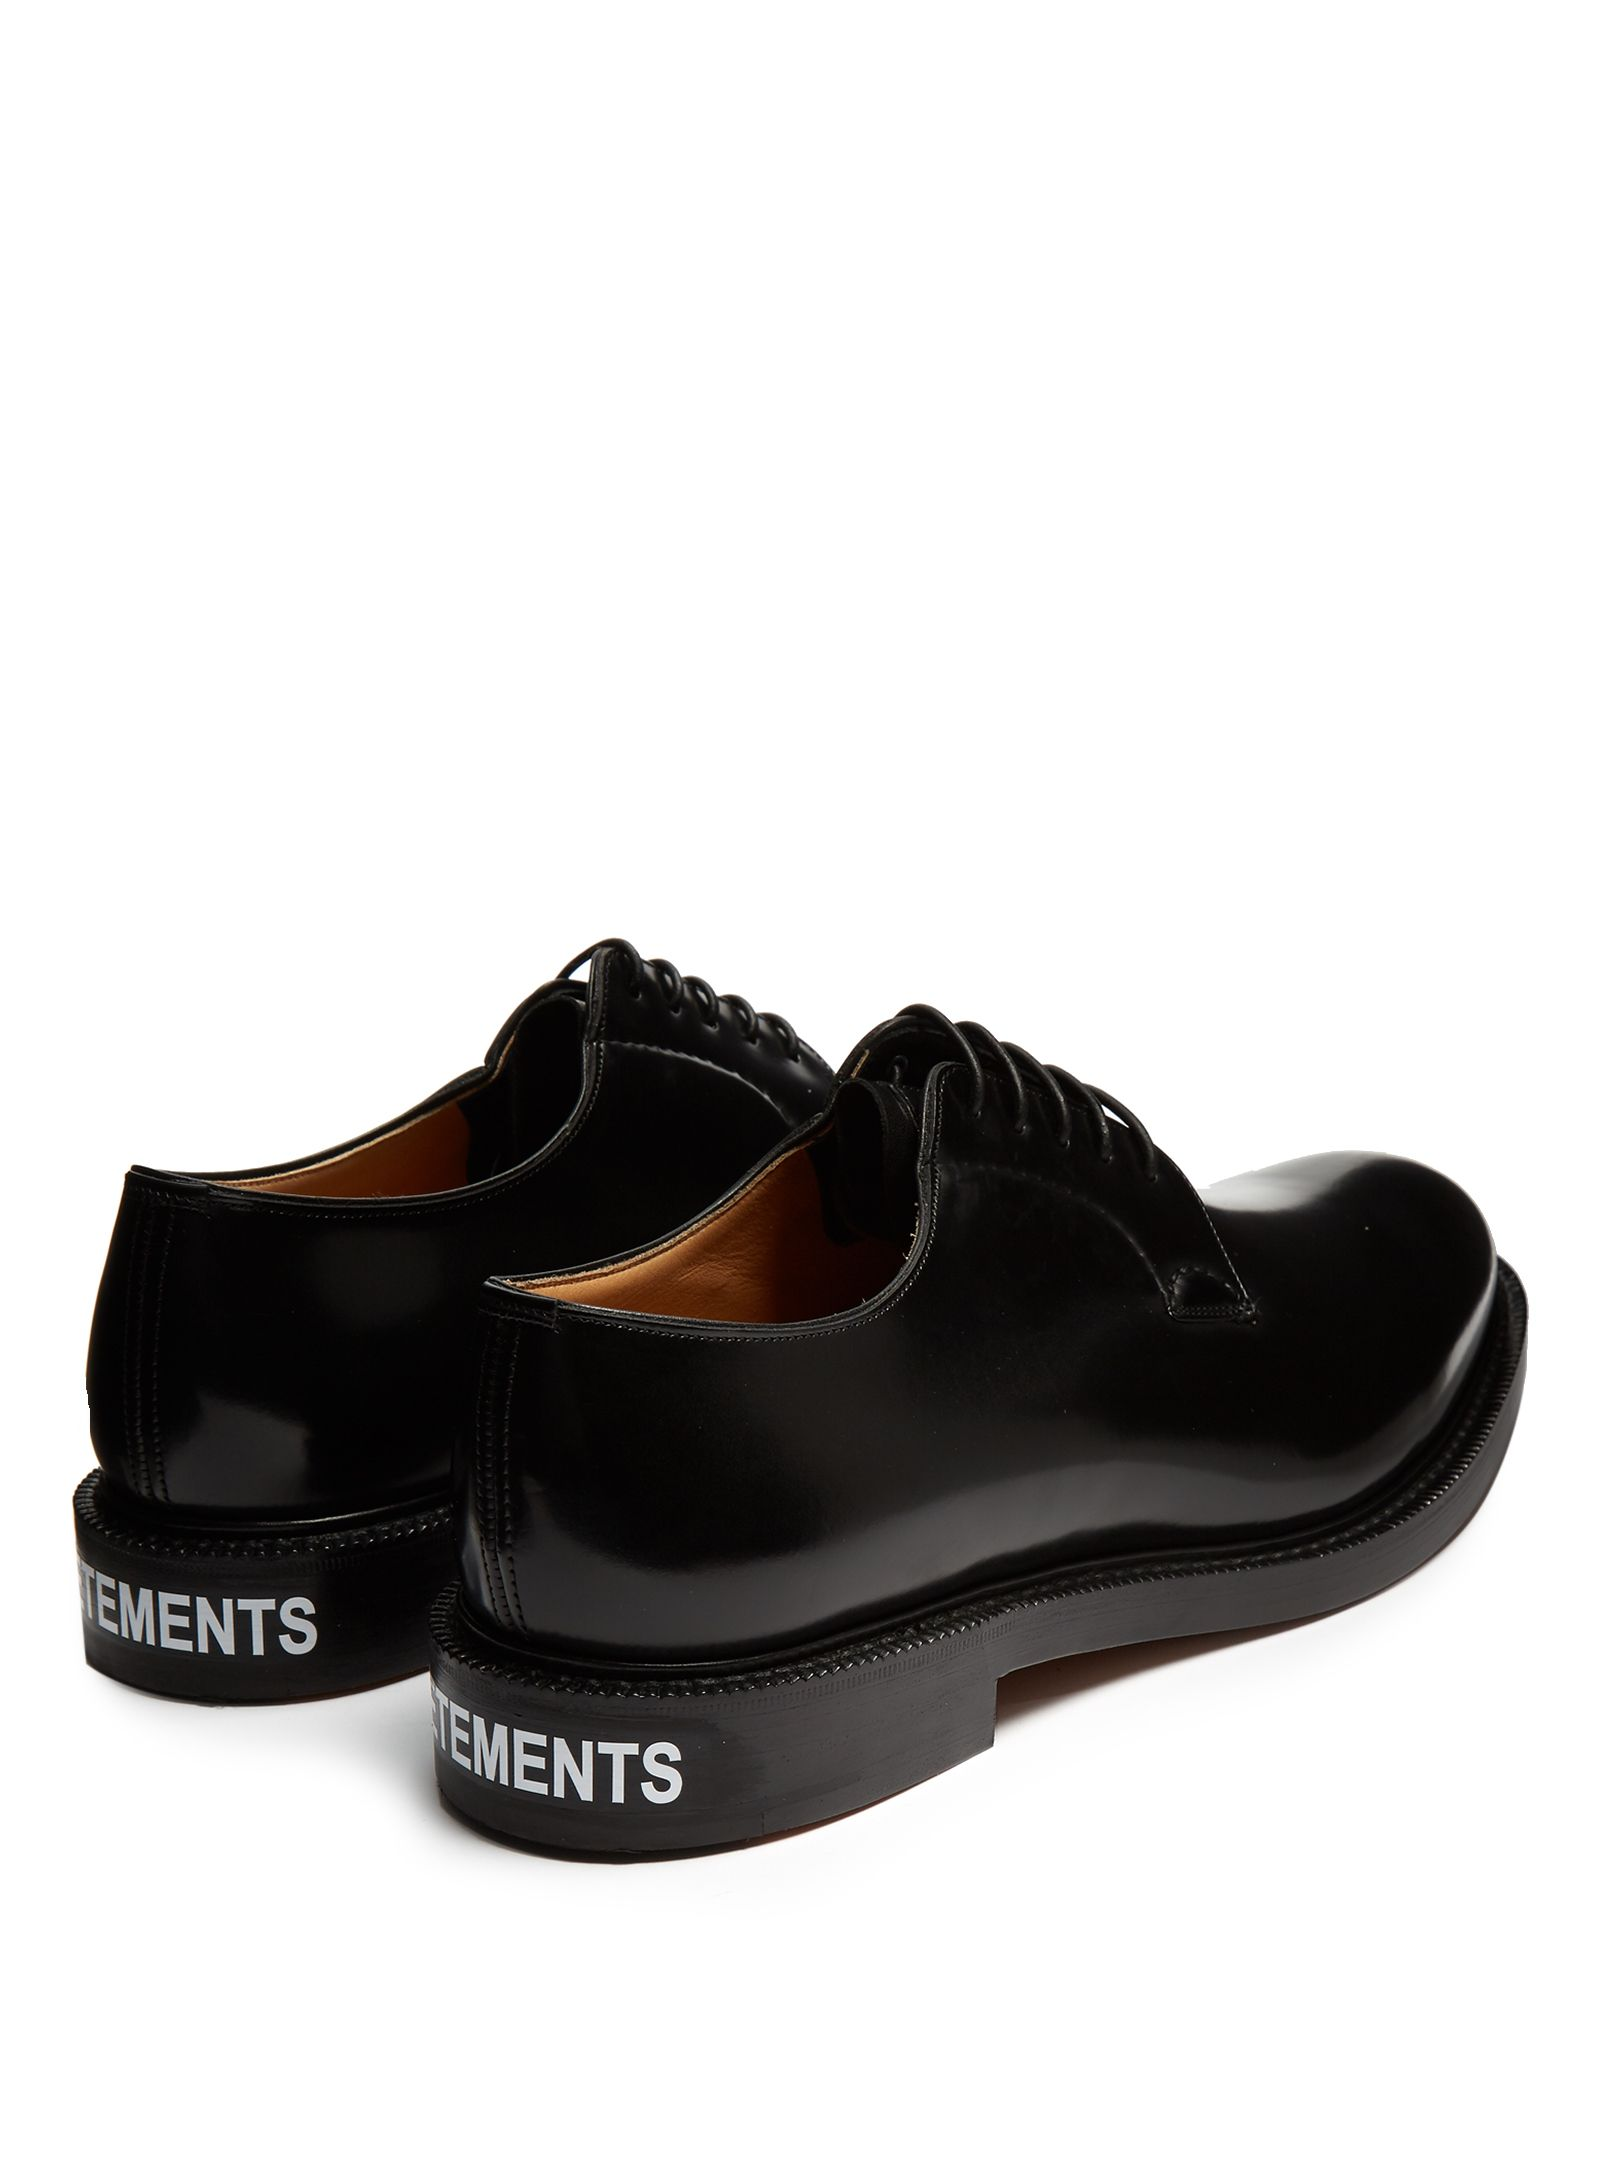 bbfcae4ff8883e Click here to buy Vetements X Church's leather derby shoes at  MATCHESFASHION.COM